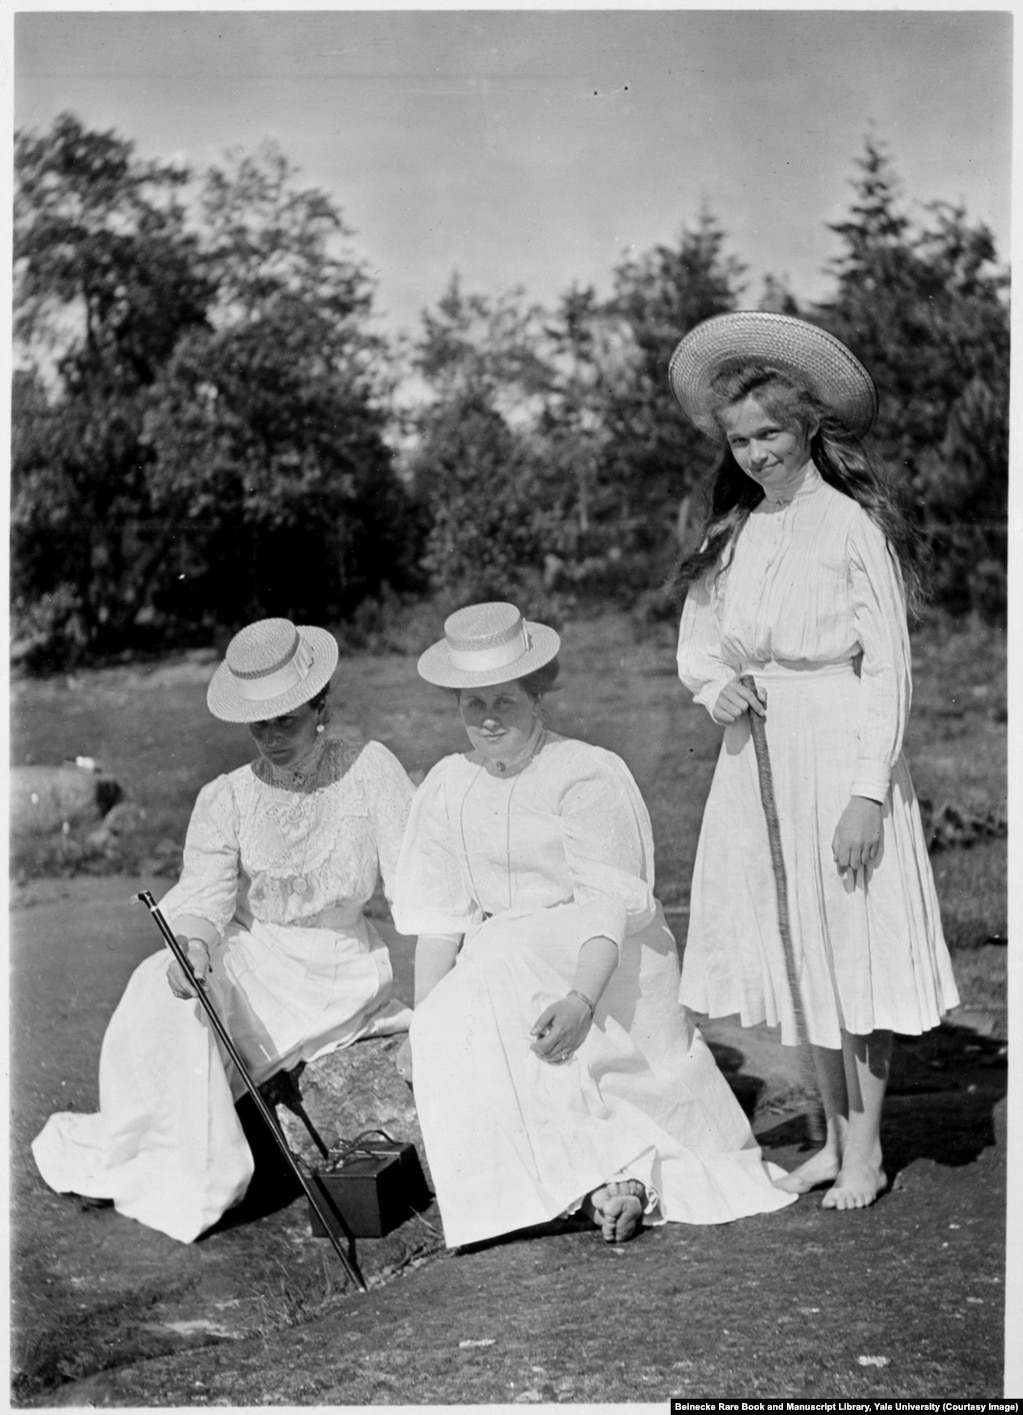 Empress Aleksandra (left) with Anna Vyrubova, and Olga, the eldest of the grand duchesses. Anna was arrested after the revolution but managed to escape to Finland with the albums, which contain more than 2,600 photographs of the private lives of the Romanovs. She died in Helsinki in 1964.